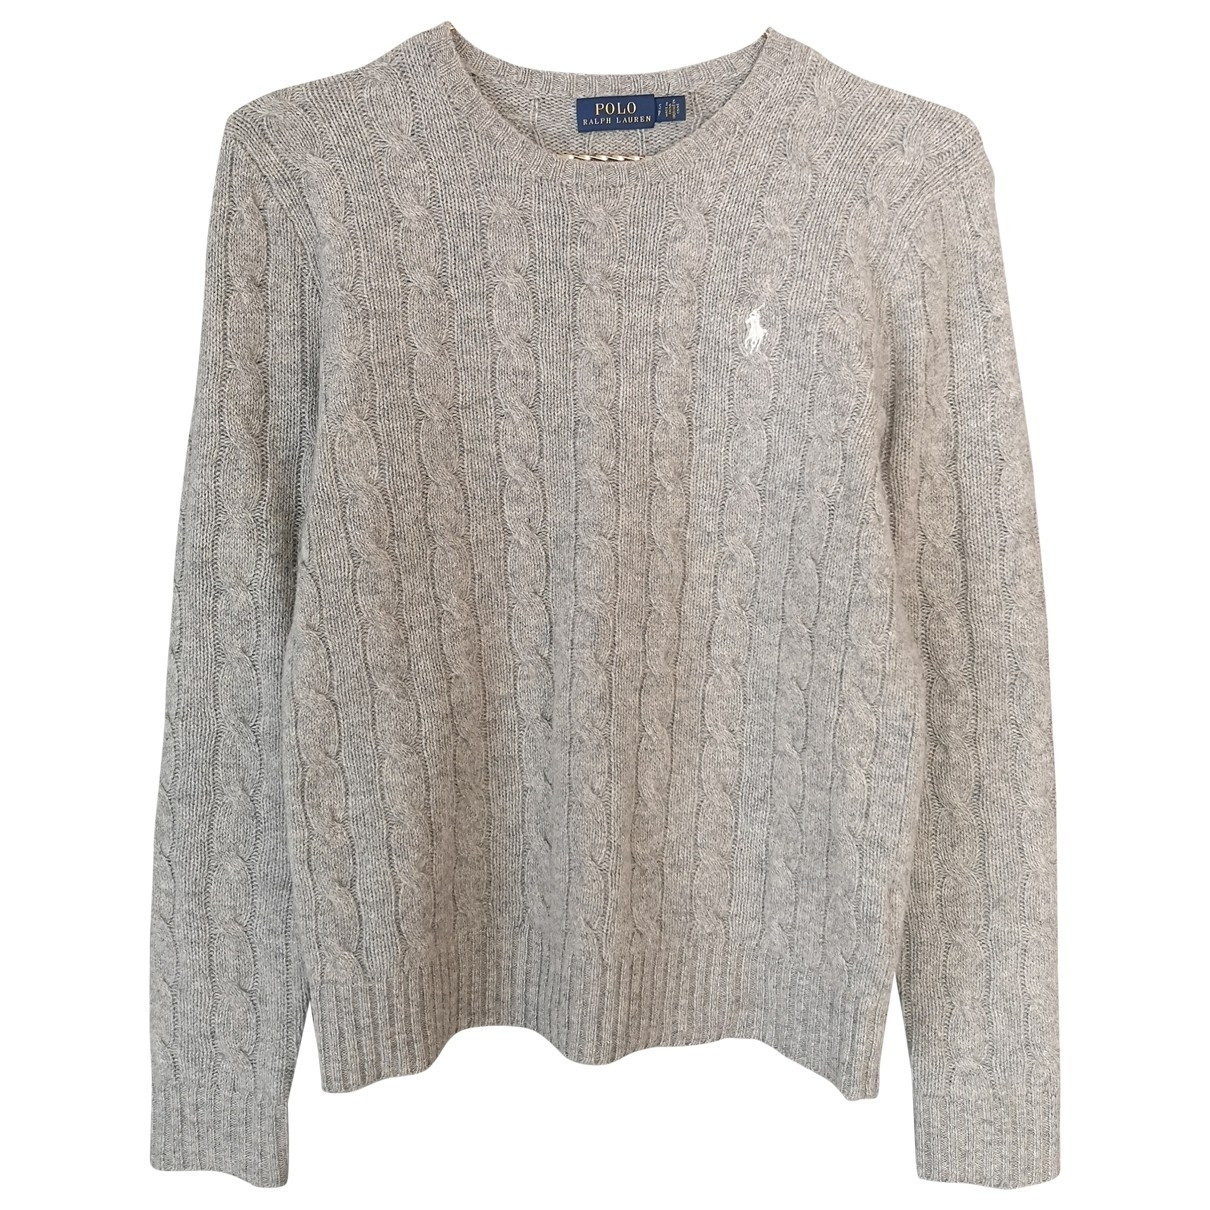 Polo Ralph Lauren \N Grey Wool Knitwear for Women S International